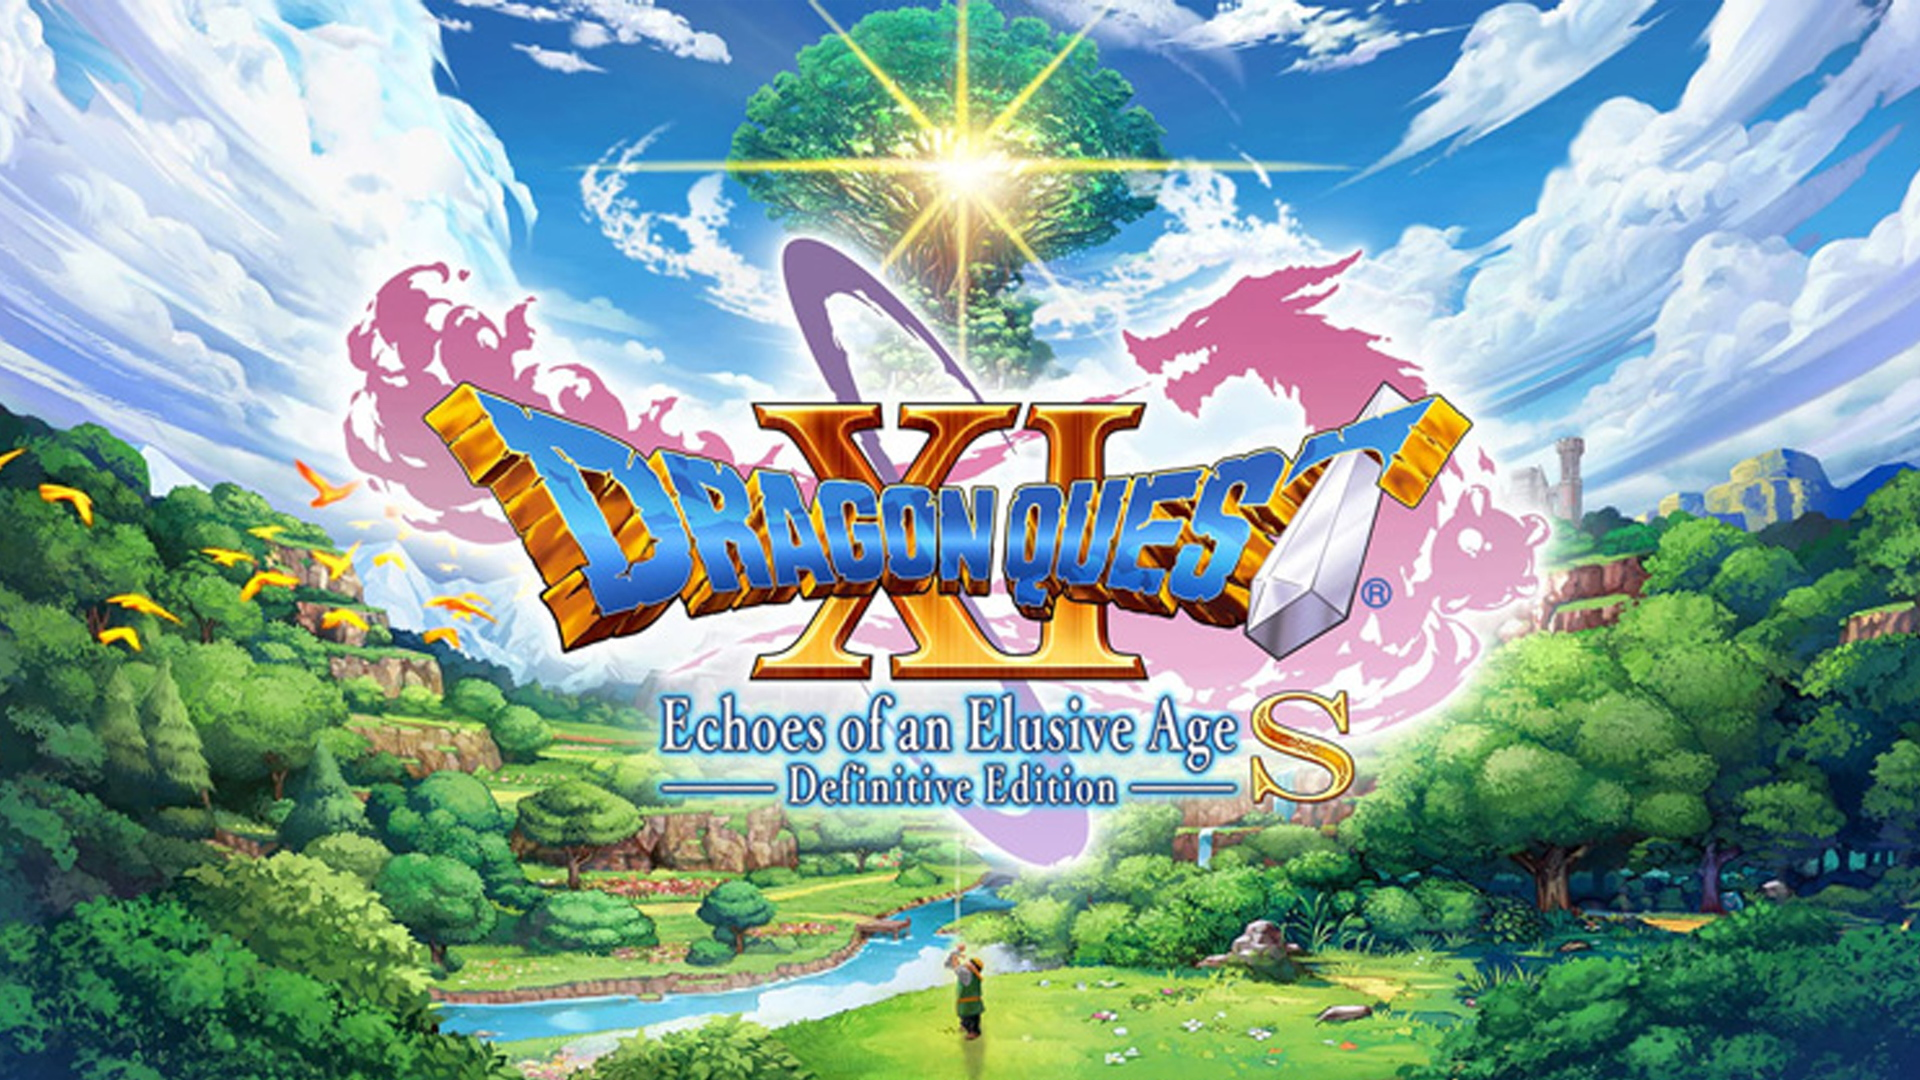 Dragon Quest Xi Echoes Of An Elusive Age Ships Over 5 5 Million Copies Worldwide Bunnygaming Com